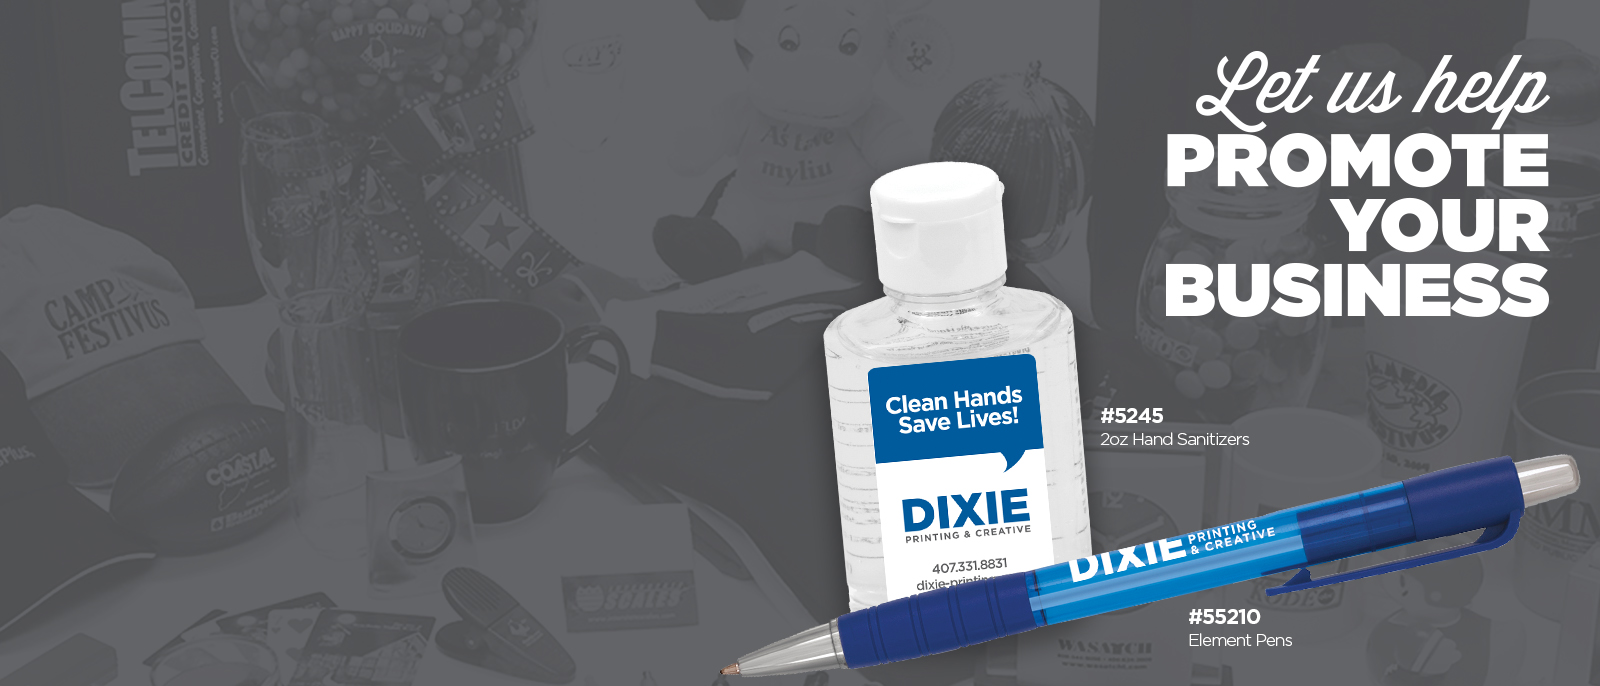 Dixie Printing and Creative